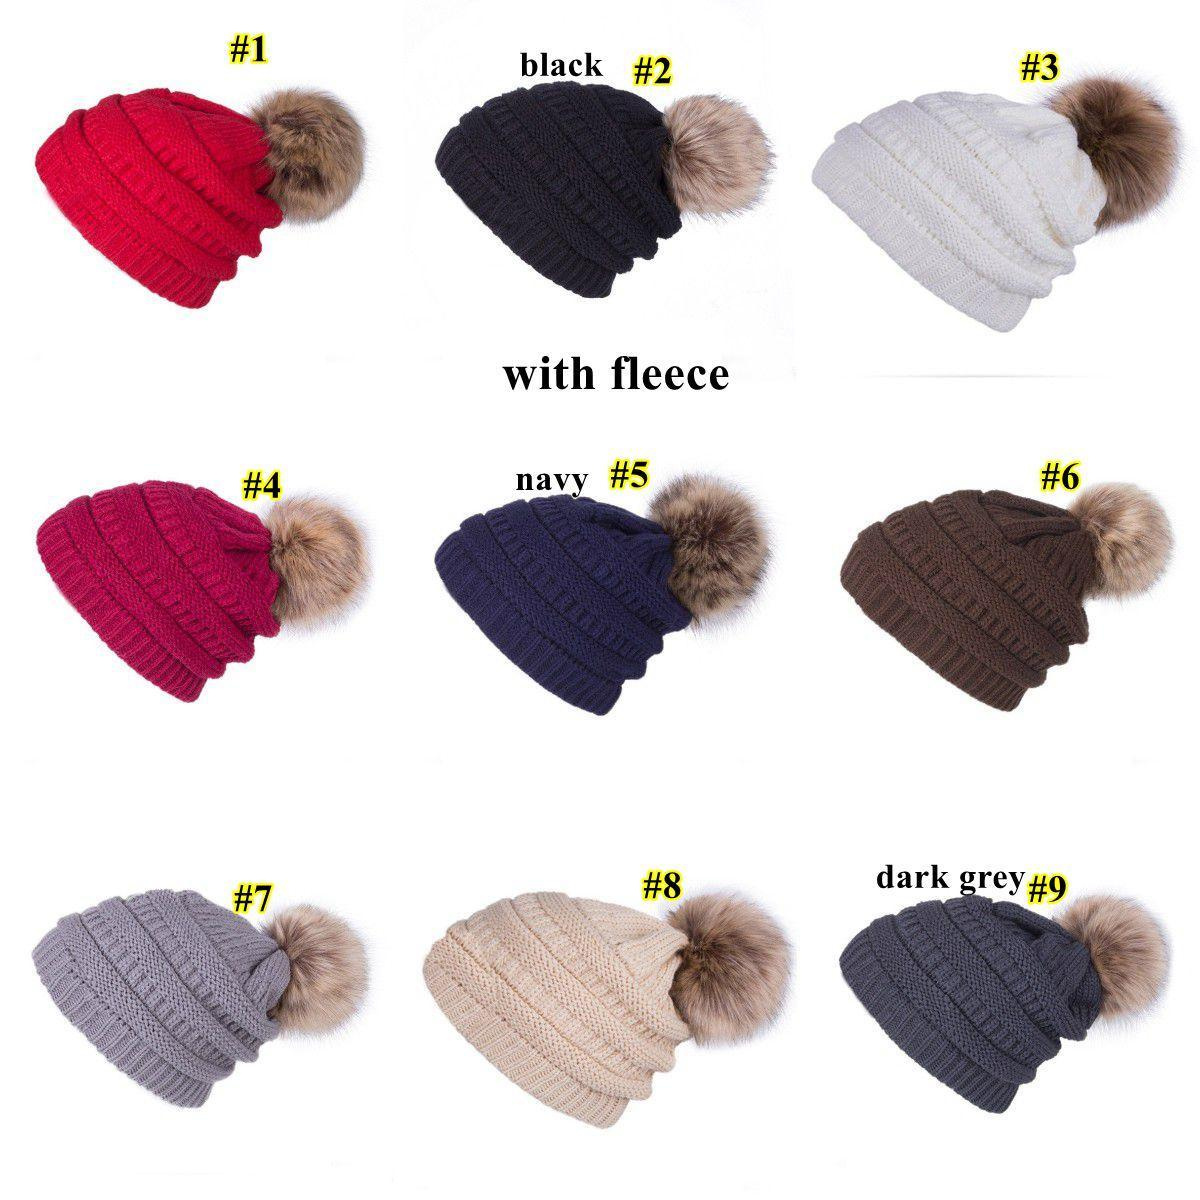 Winter-Frauen gestrickte Thick Beanies Brief Ball Hut Warme Wolle unisex Crochet Schädel Beanie Female Ski geschröpft Caps